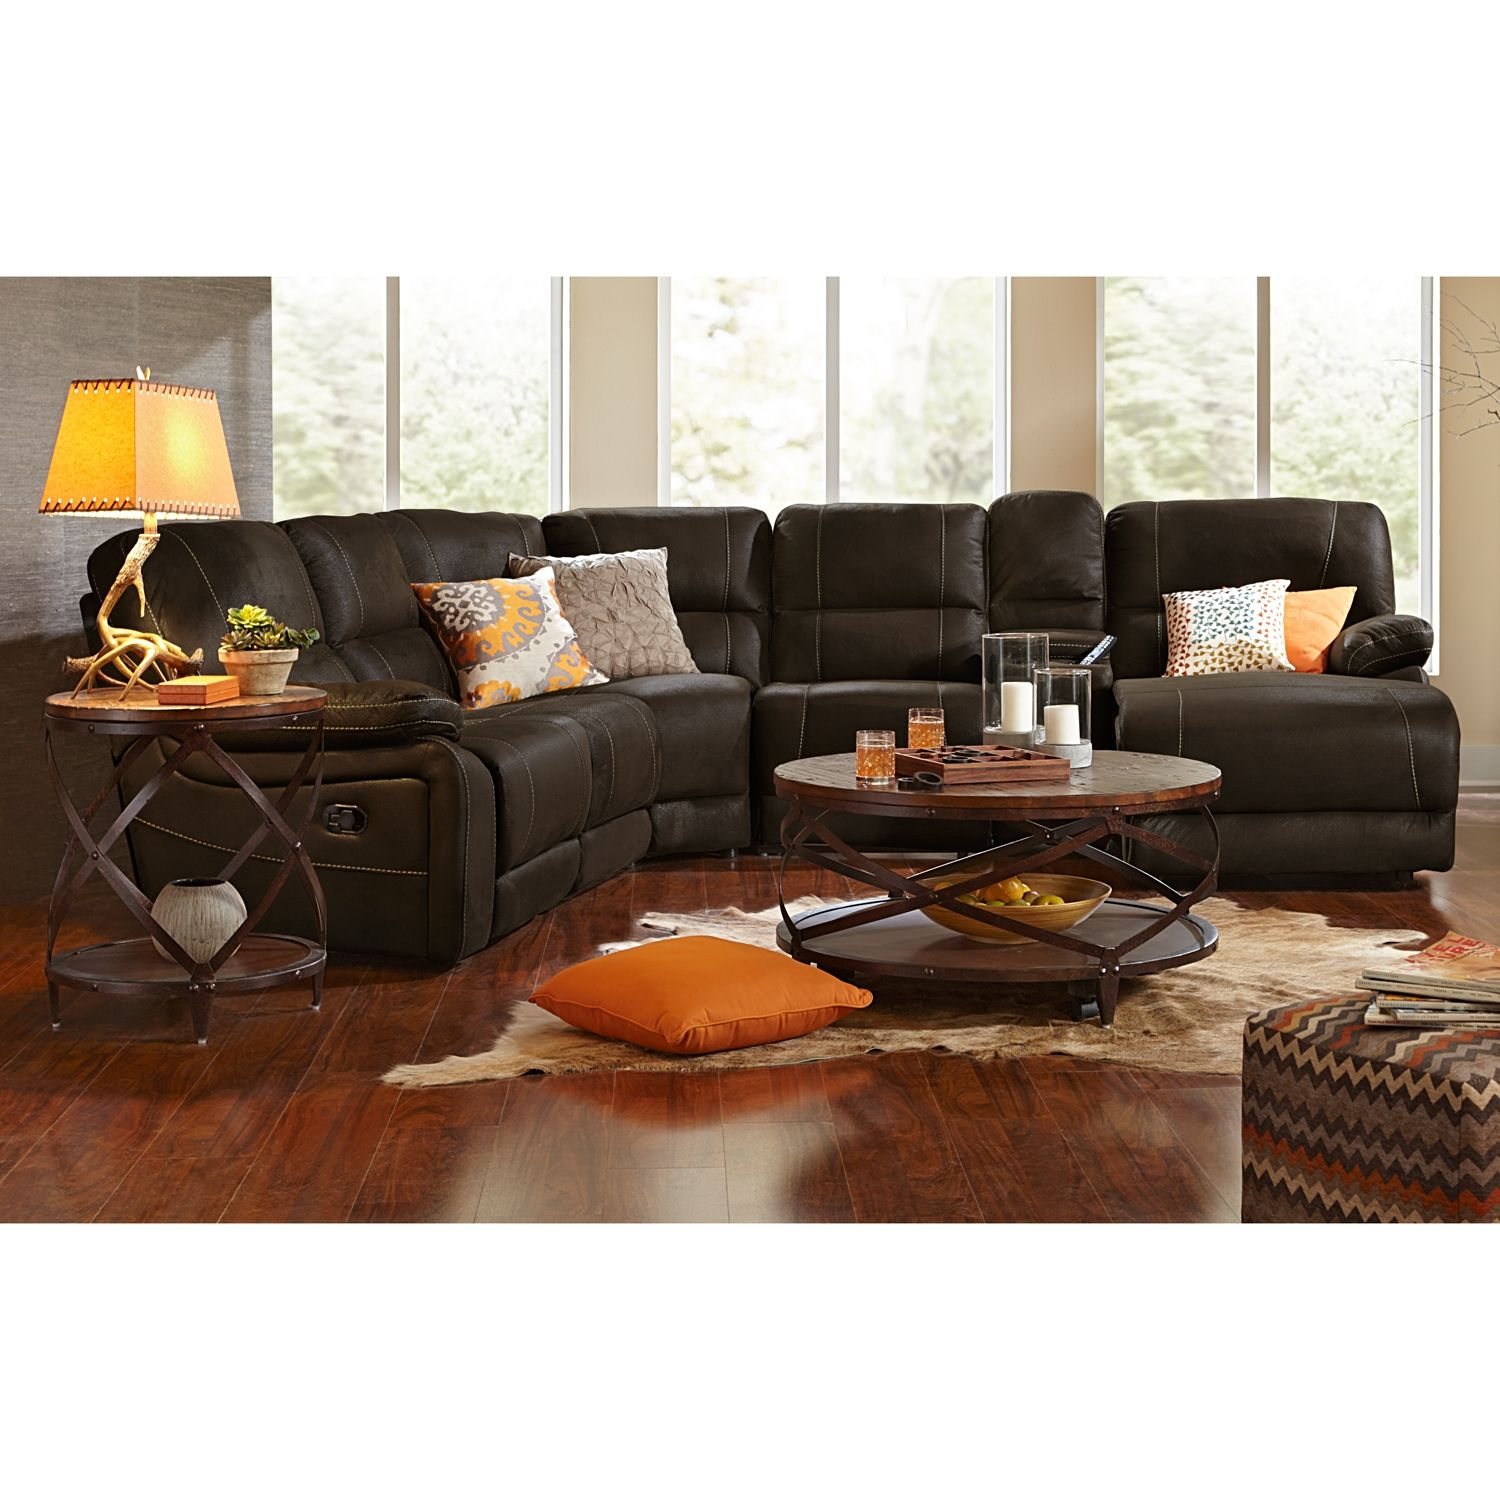 Living Room Furniture  Wyoming Saddle 5 Pcreclining Sectional Fair Cheap Living Room Sets Under 300 2018